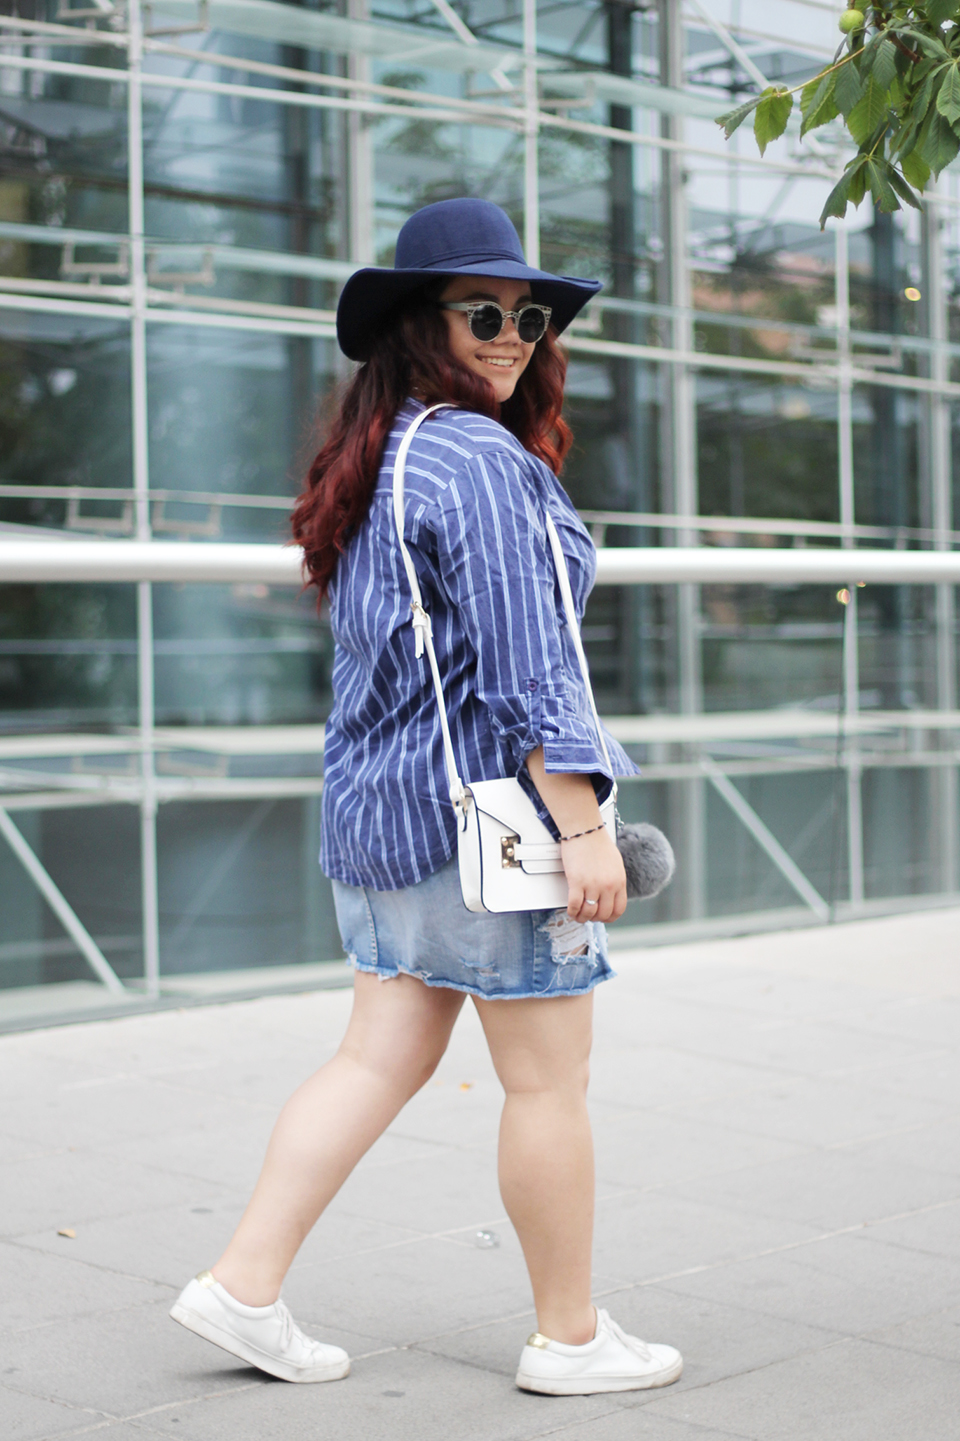 fashion-blogger-denim-skirt-forever21-yoins-blue-hat-lookchic-quay sunglasses-mexican-ripped-stripes-sneakers-river-island